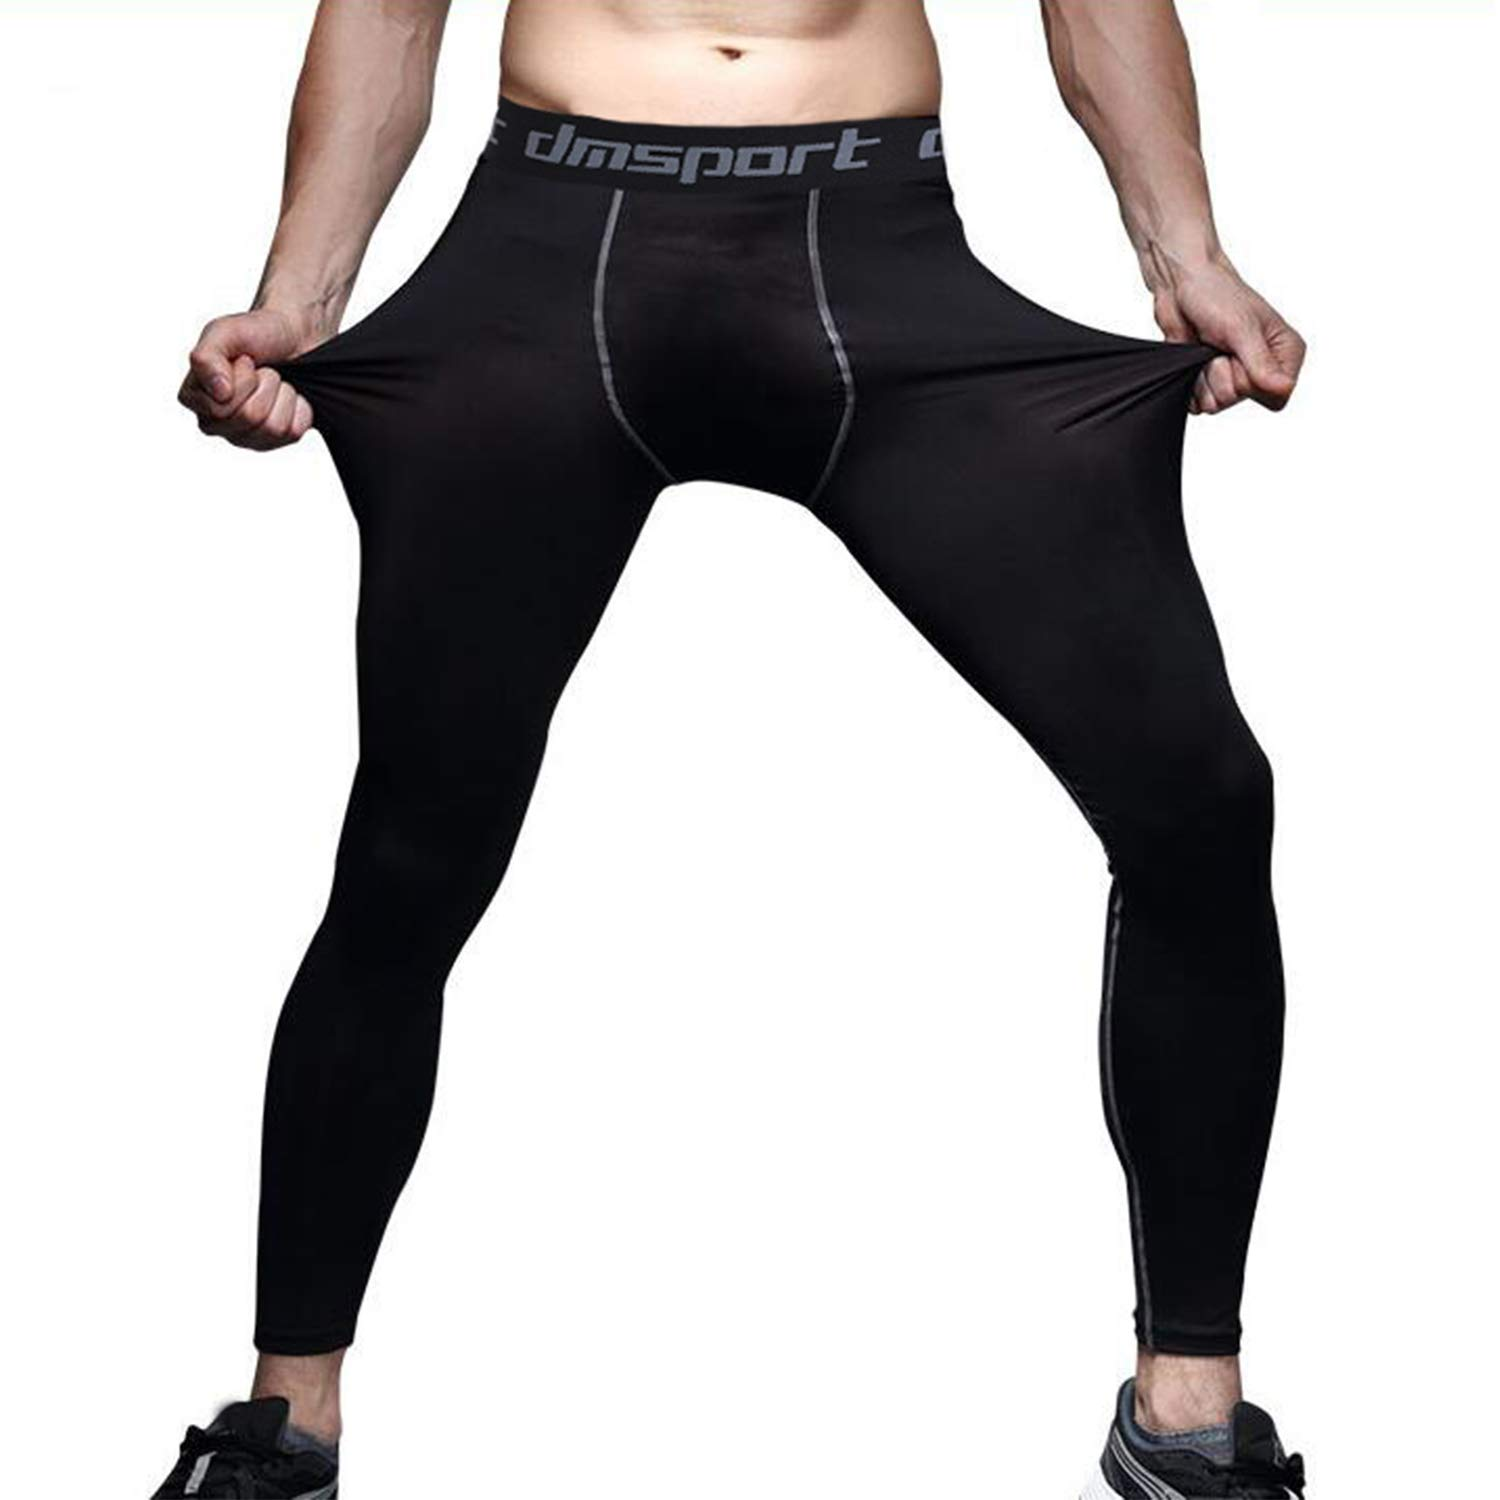 FITTOO Men's Compression Fitness Pants Cool Dry Running Workout Tights Leggings